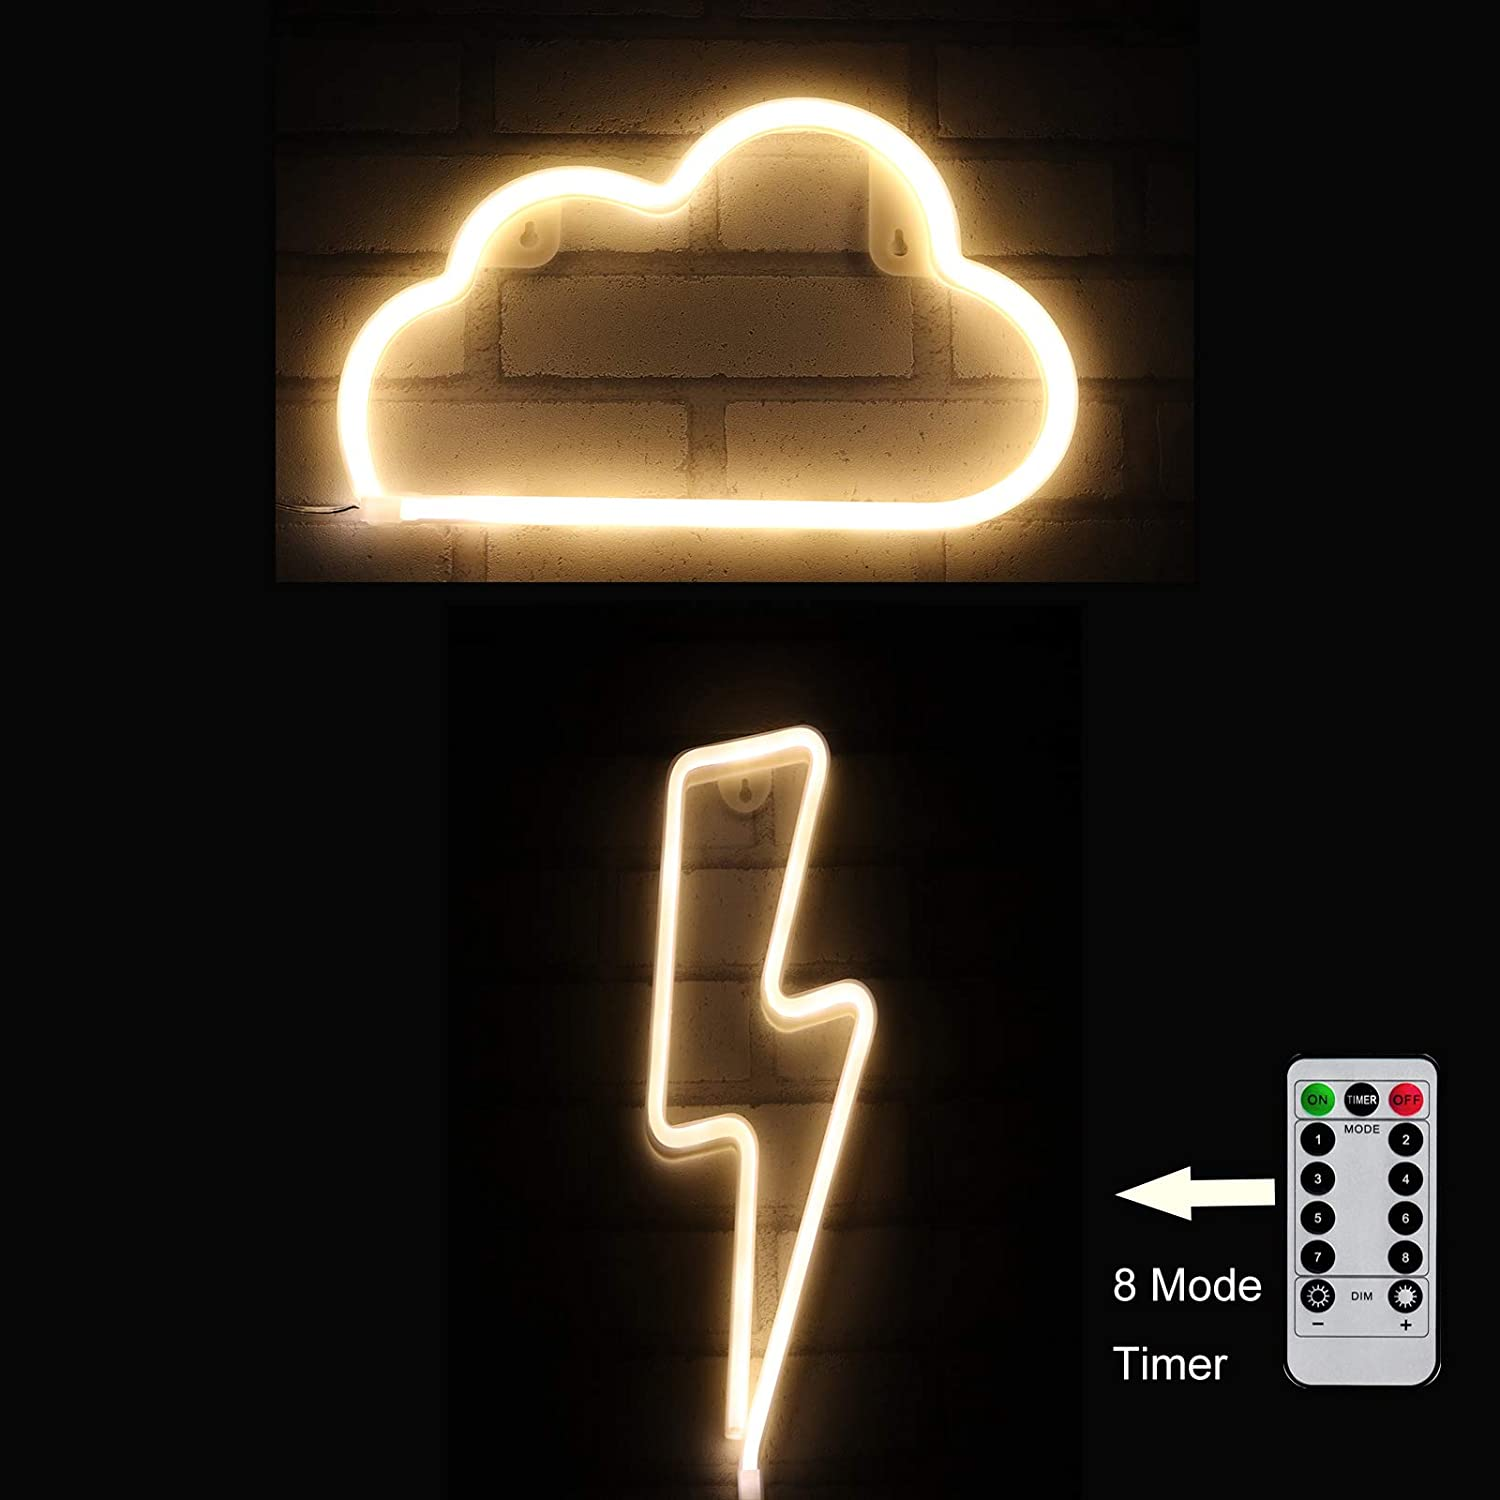 Cloud Light Lightning Bolt Neon Sign 8 Mode Flash|USB Powered Wall Art Decor for Party,Game Room, Man Gave|Warm White Neon Night Lamp|Thunder Storm Aesthetic|Birthday Christmas Gifts